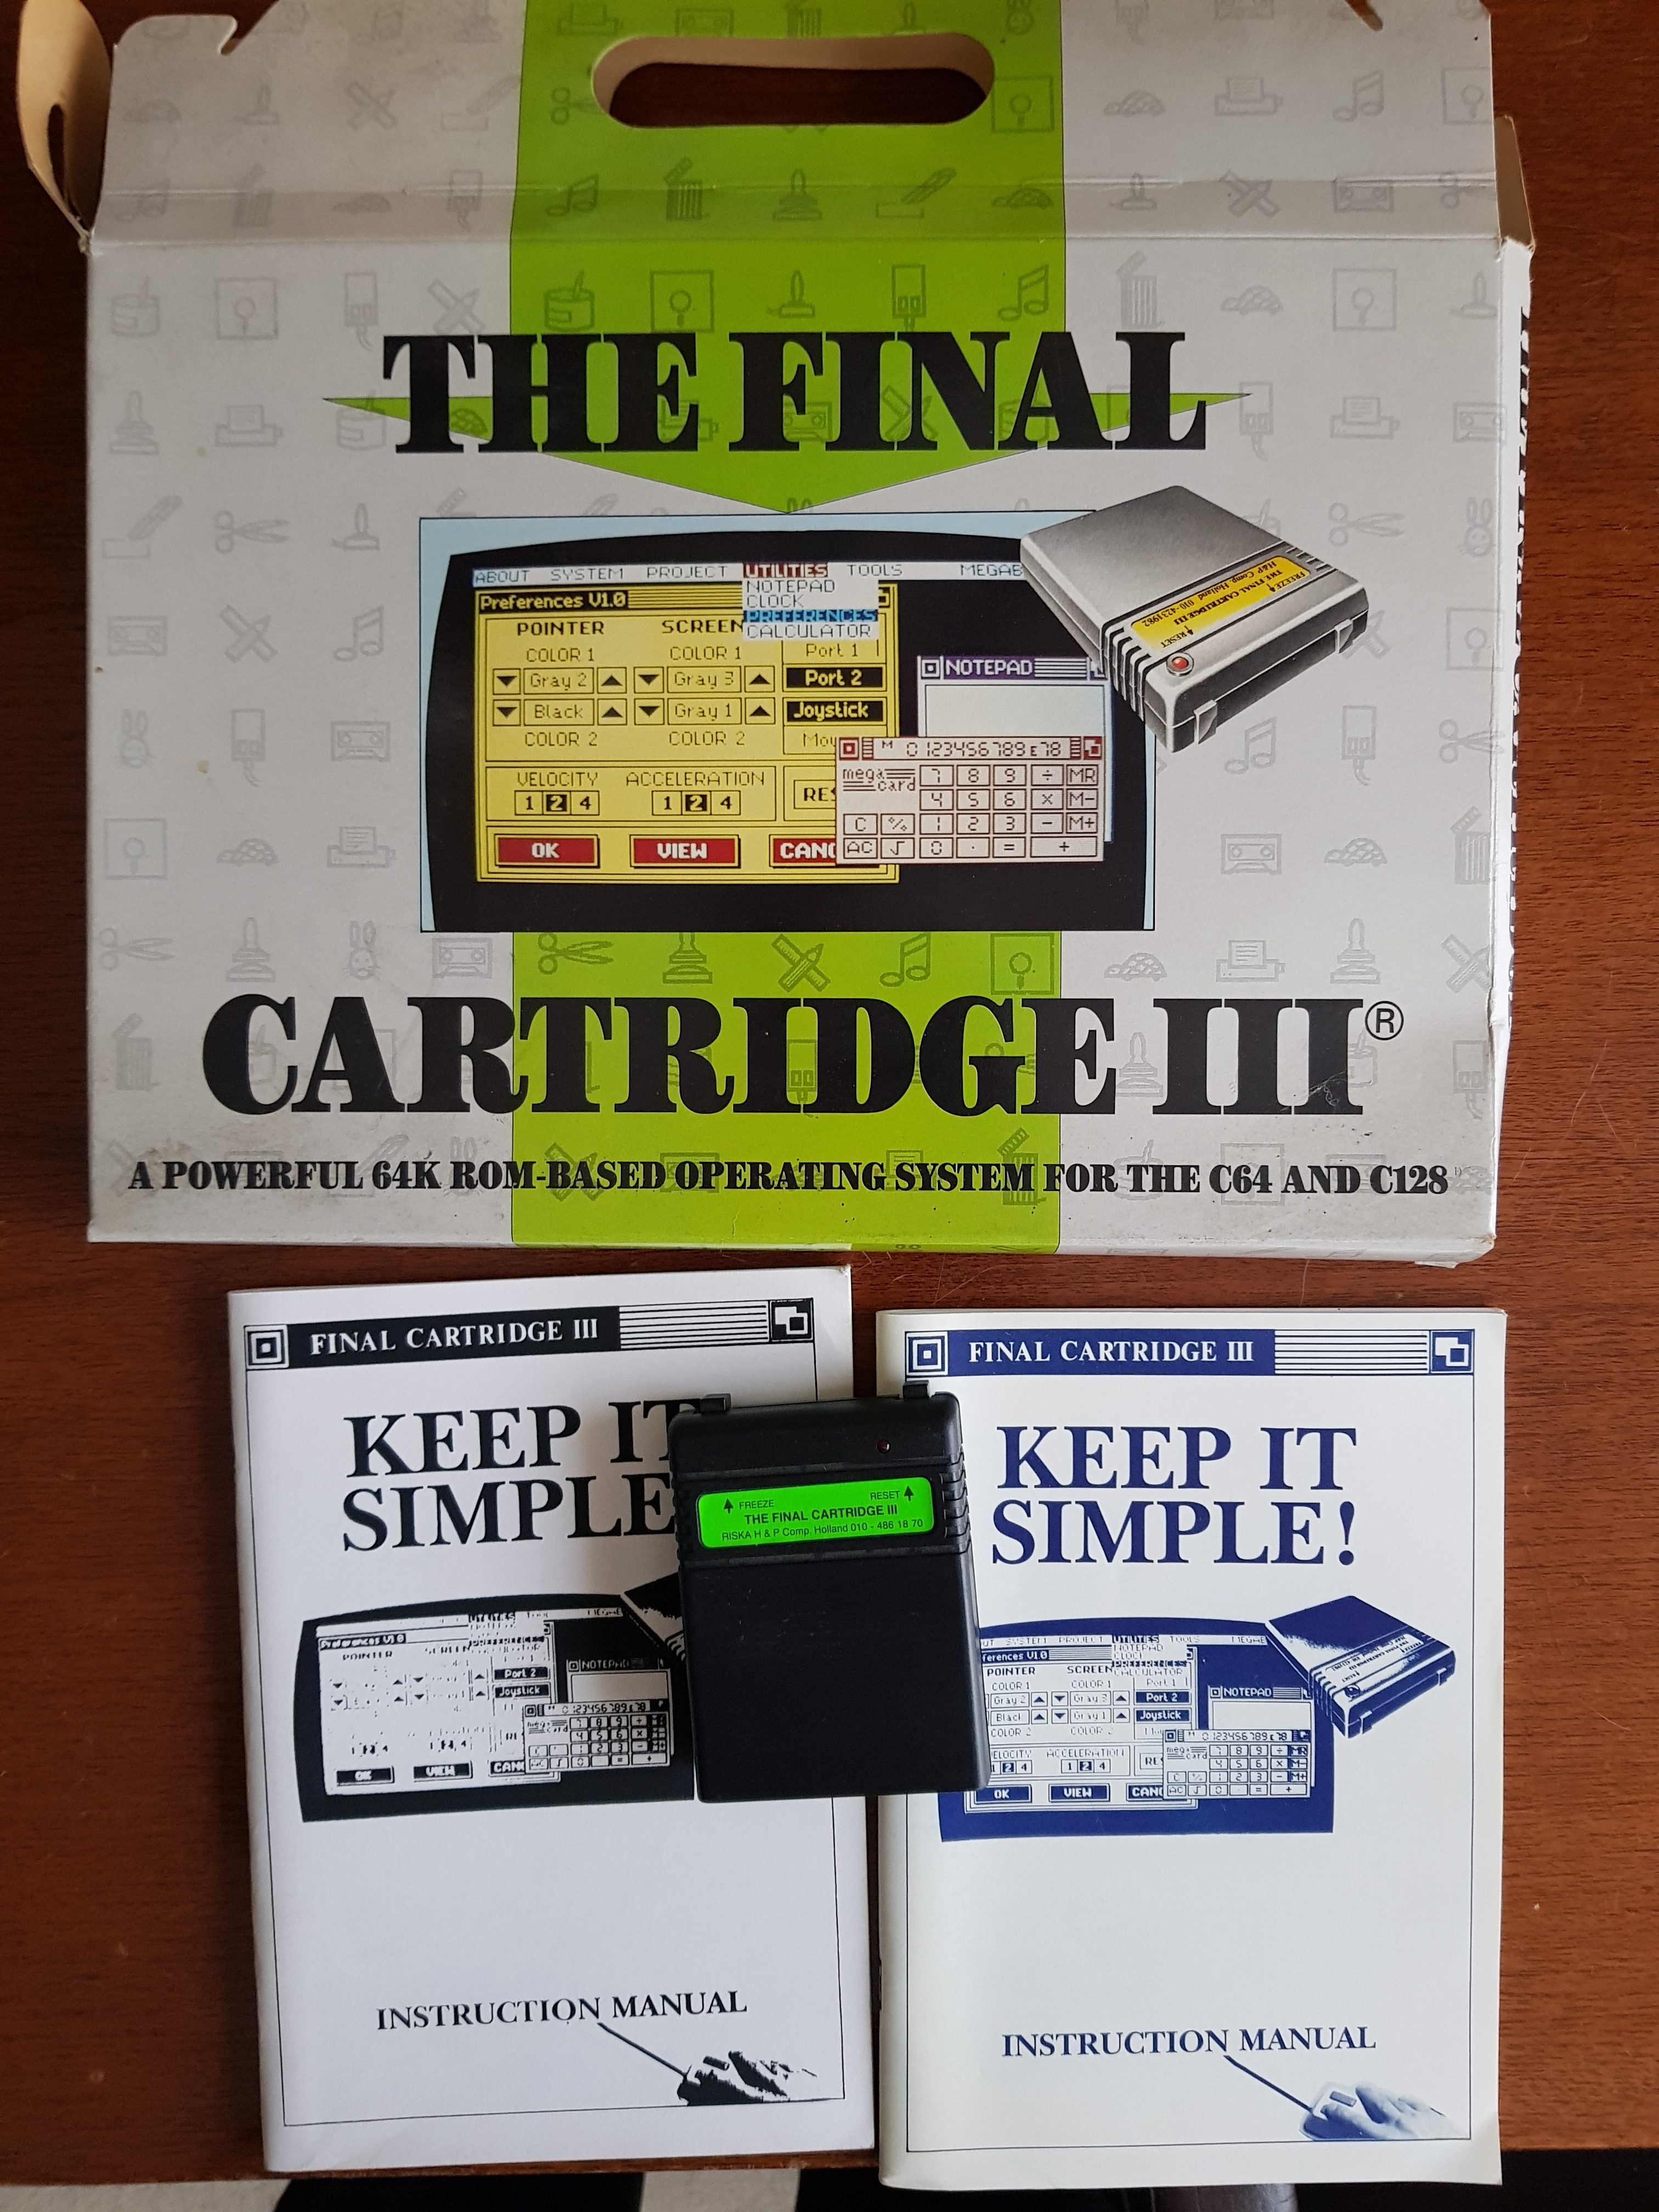 World of C64 | Adventuring the retro world of the C64 | Page 4